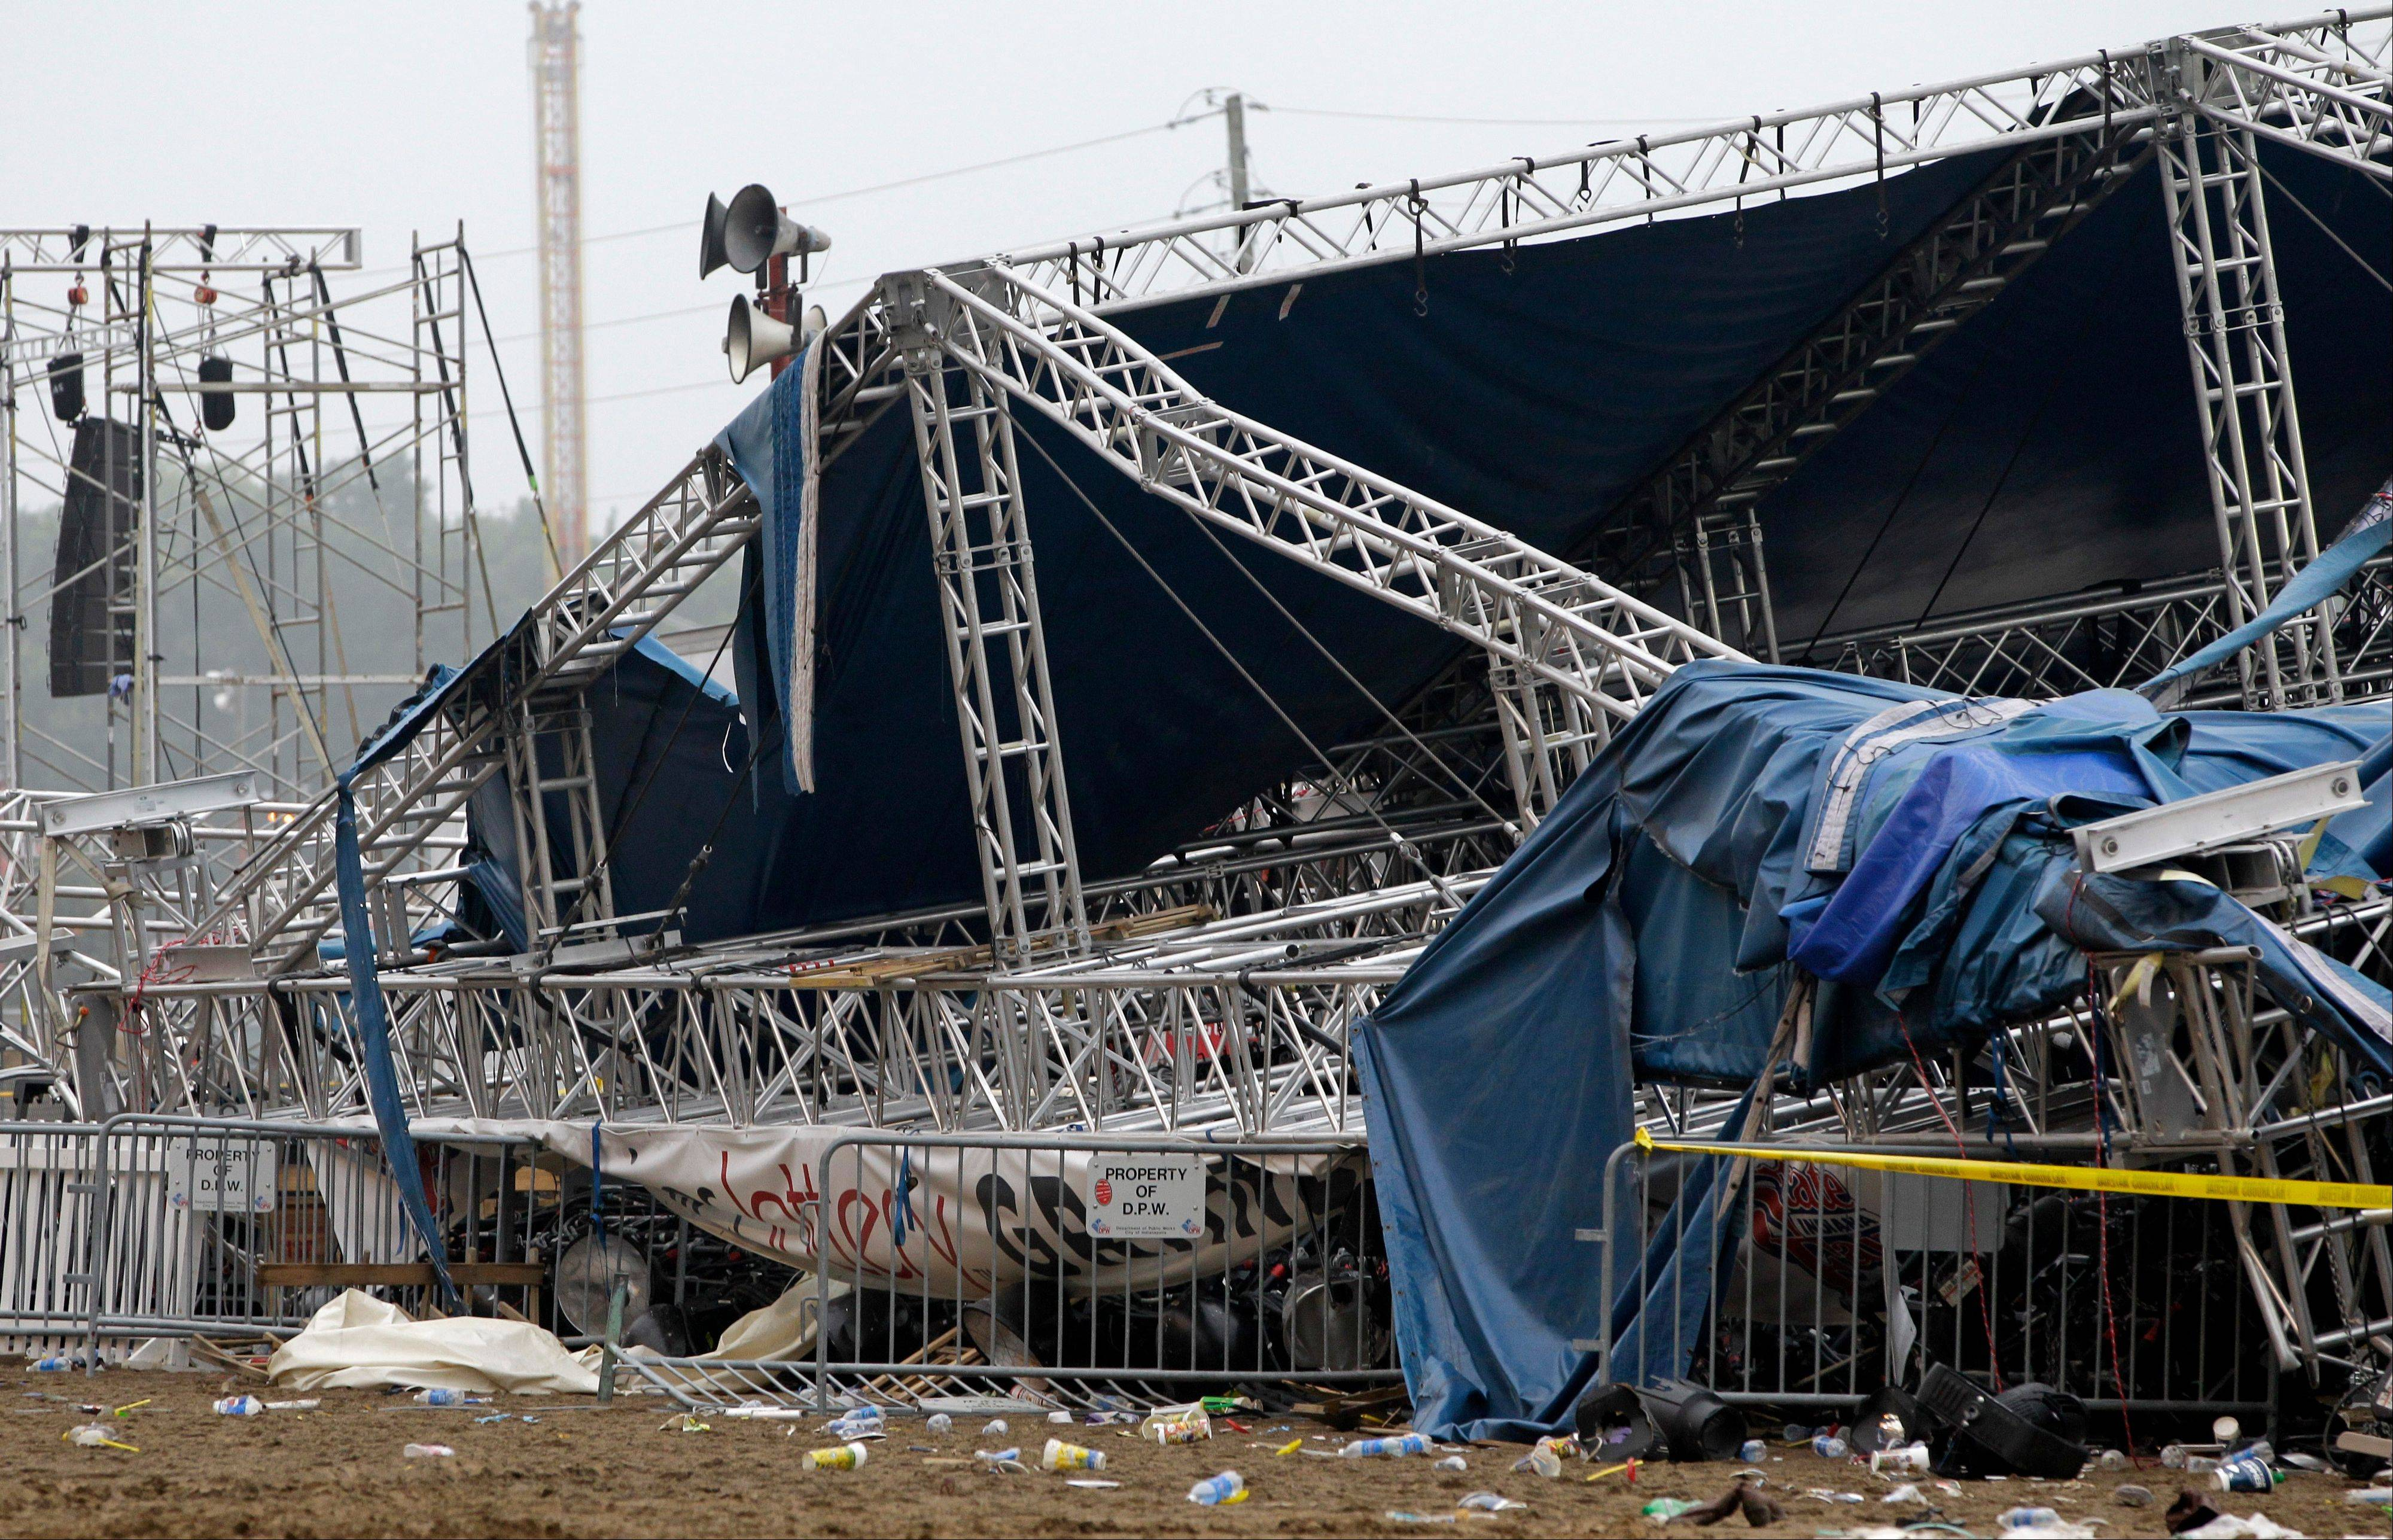 Indiana State Police and authorities survey the collapsed rigging and Sugarland stage on the infield at the Indiana State Fair in Indianapolis Sunday Aug. 14 2011. Five people died in the stage collapse.